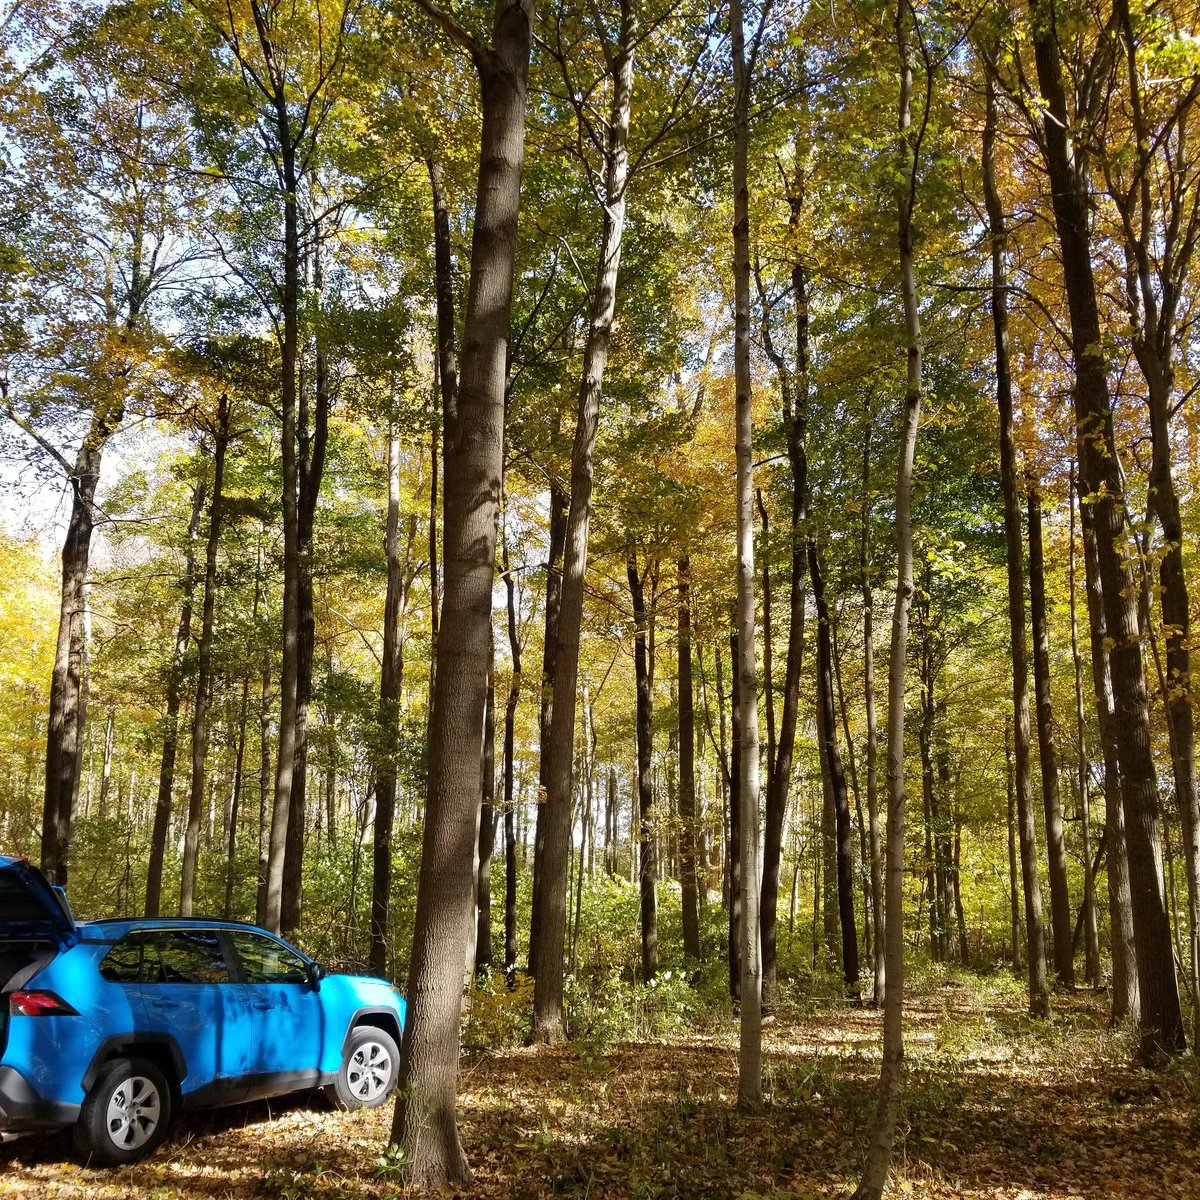 Home for the weekend. Peak leaf. Cold beer.  Great company. Perfection. This is the latest in the season we've camped. It's worth the temp to see the scenery. #Fall #SpoopySeason #campinglife #October #Tentcamping #Tent #Leaves #Toyota #Rav4 #Campfire #Smores https://t.co/LSD4LQ0qGJ